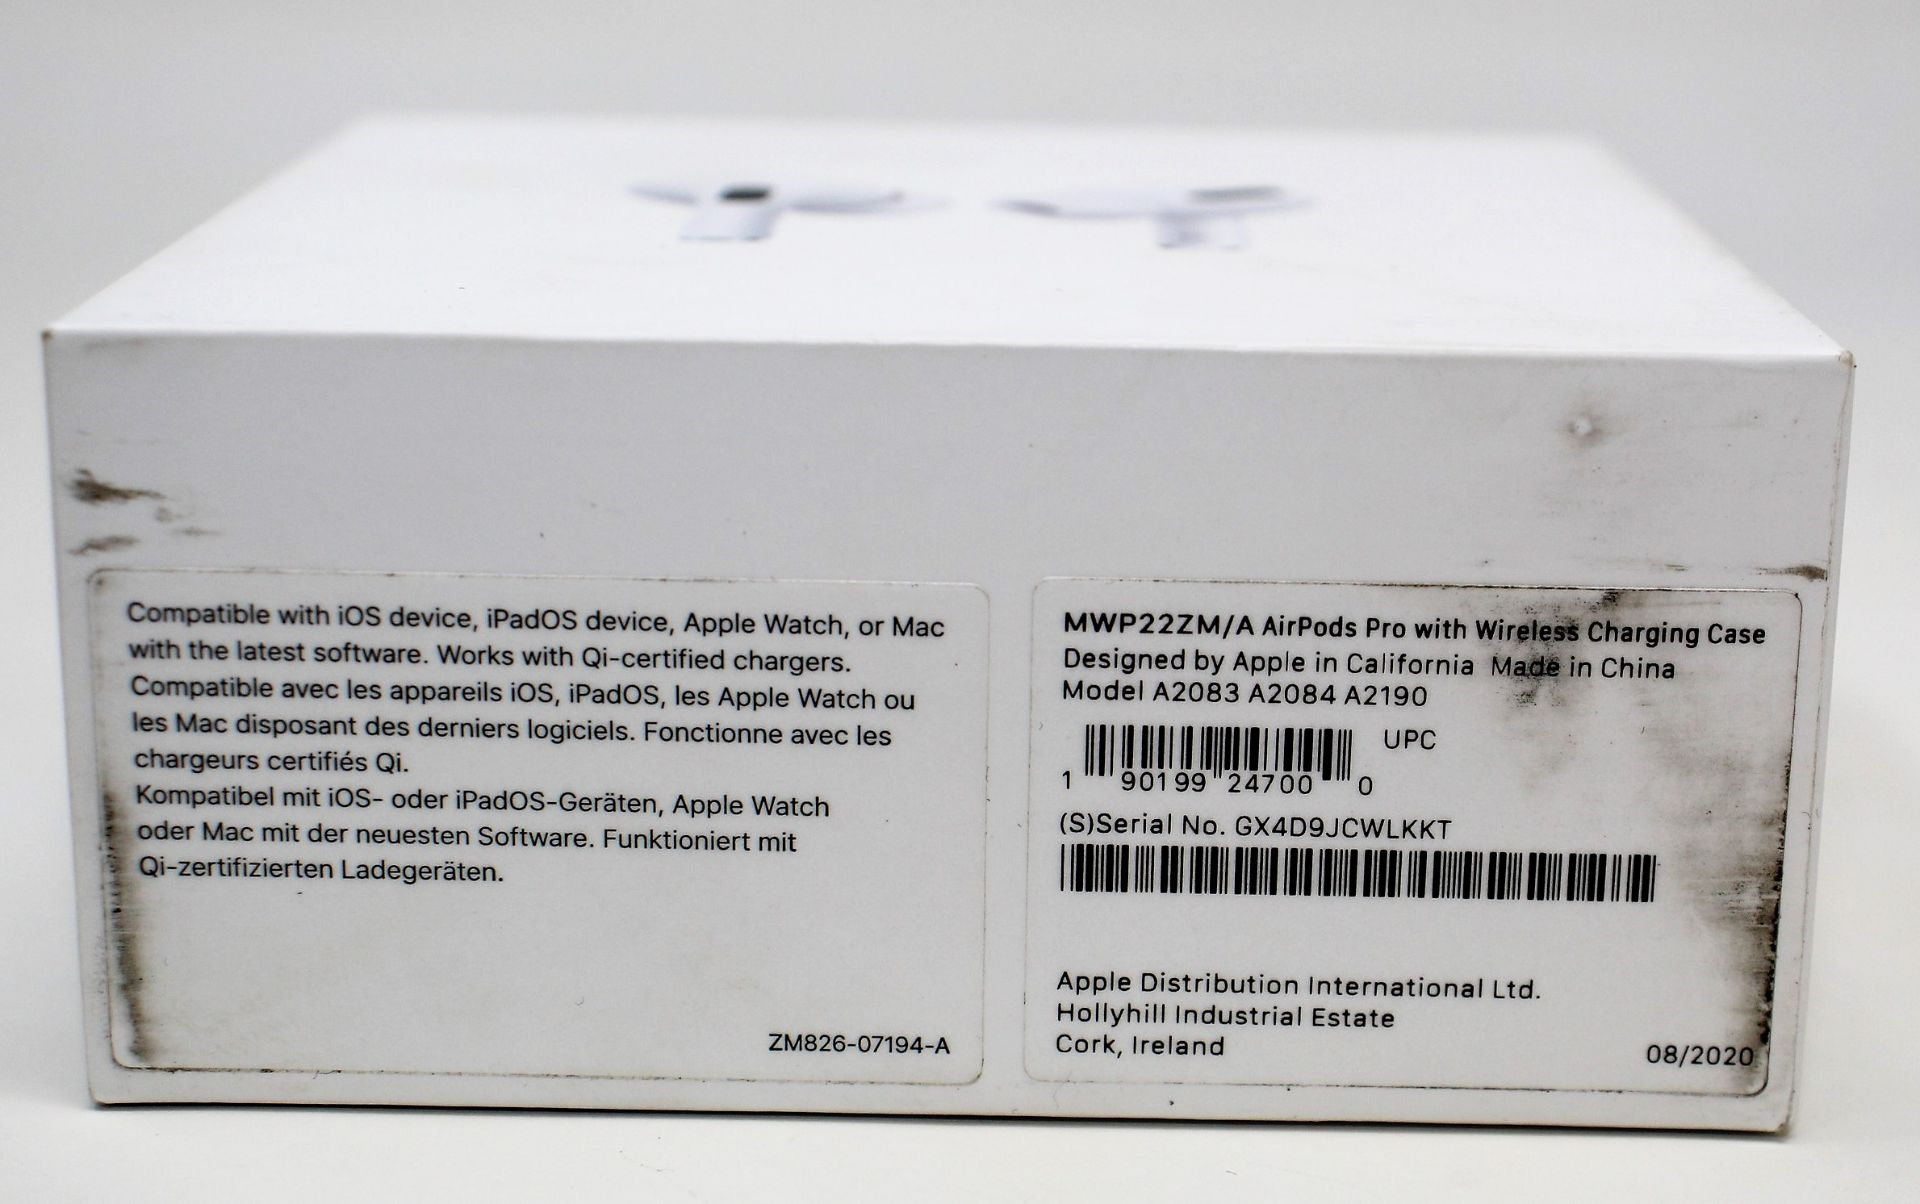 A pre-owned pair of Apple Airpods Pro with Wireless Charging Case (A2083 A2084 A2190) (box, as new - Image 2 of 3